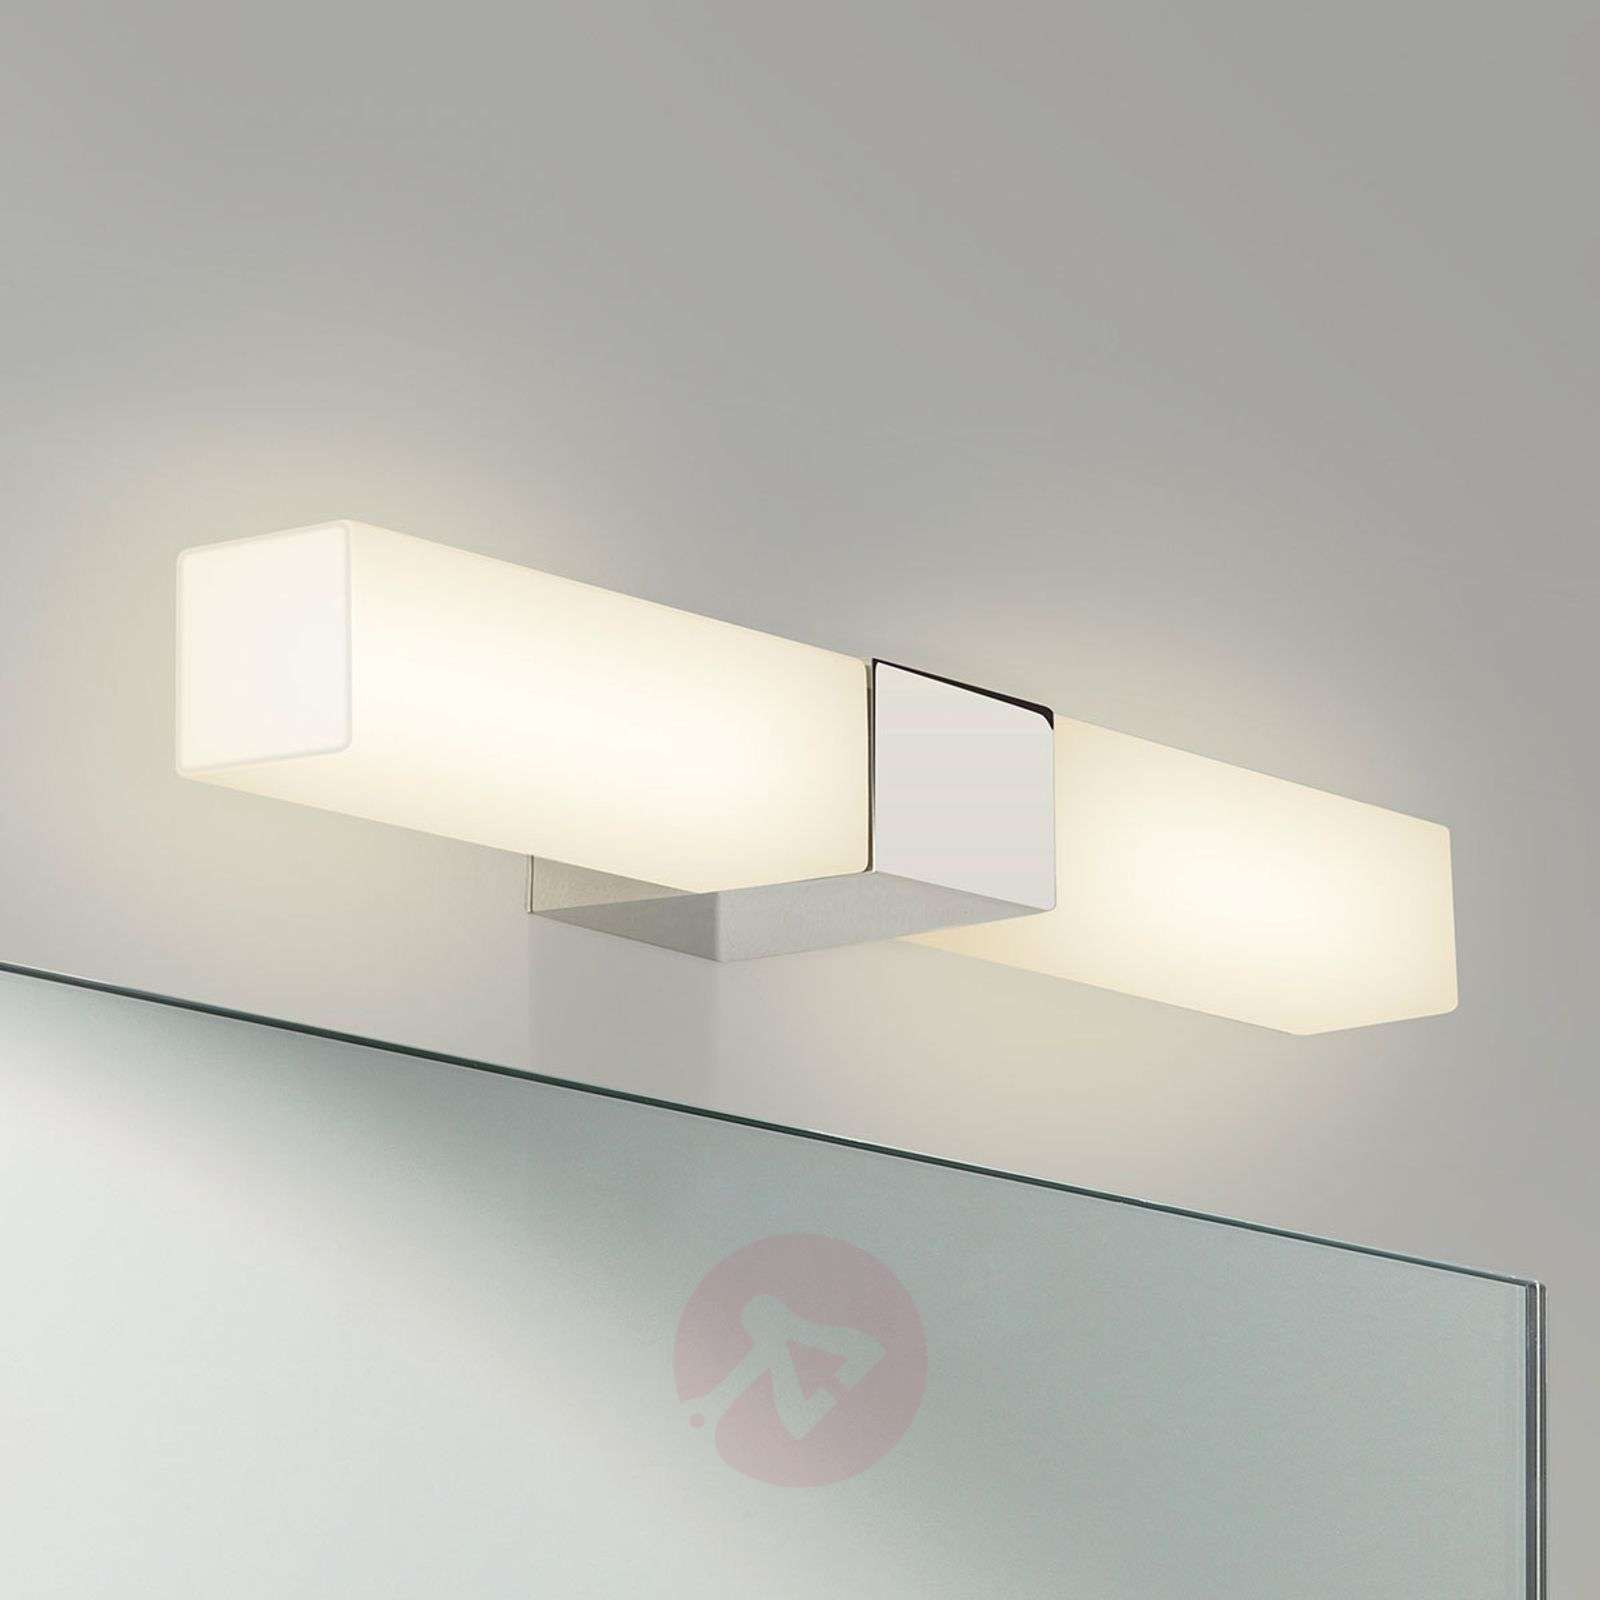 Astro Padova Square wall light für the bathroom-1020387-02